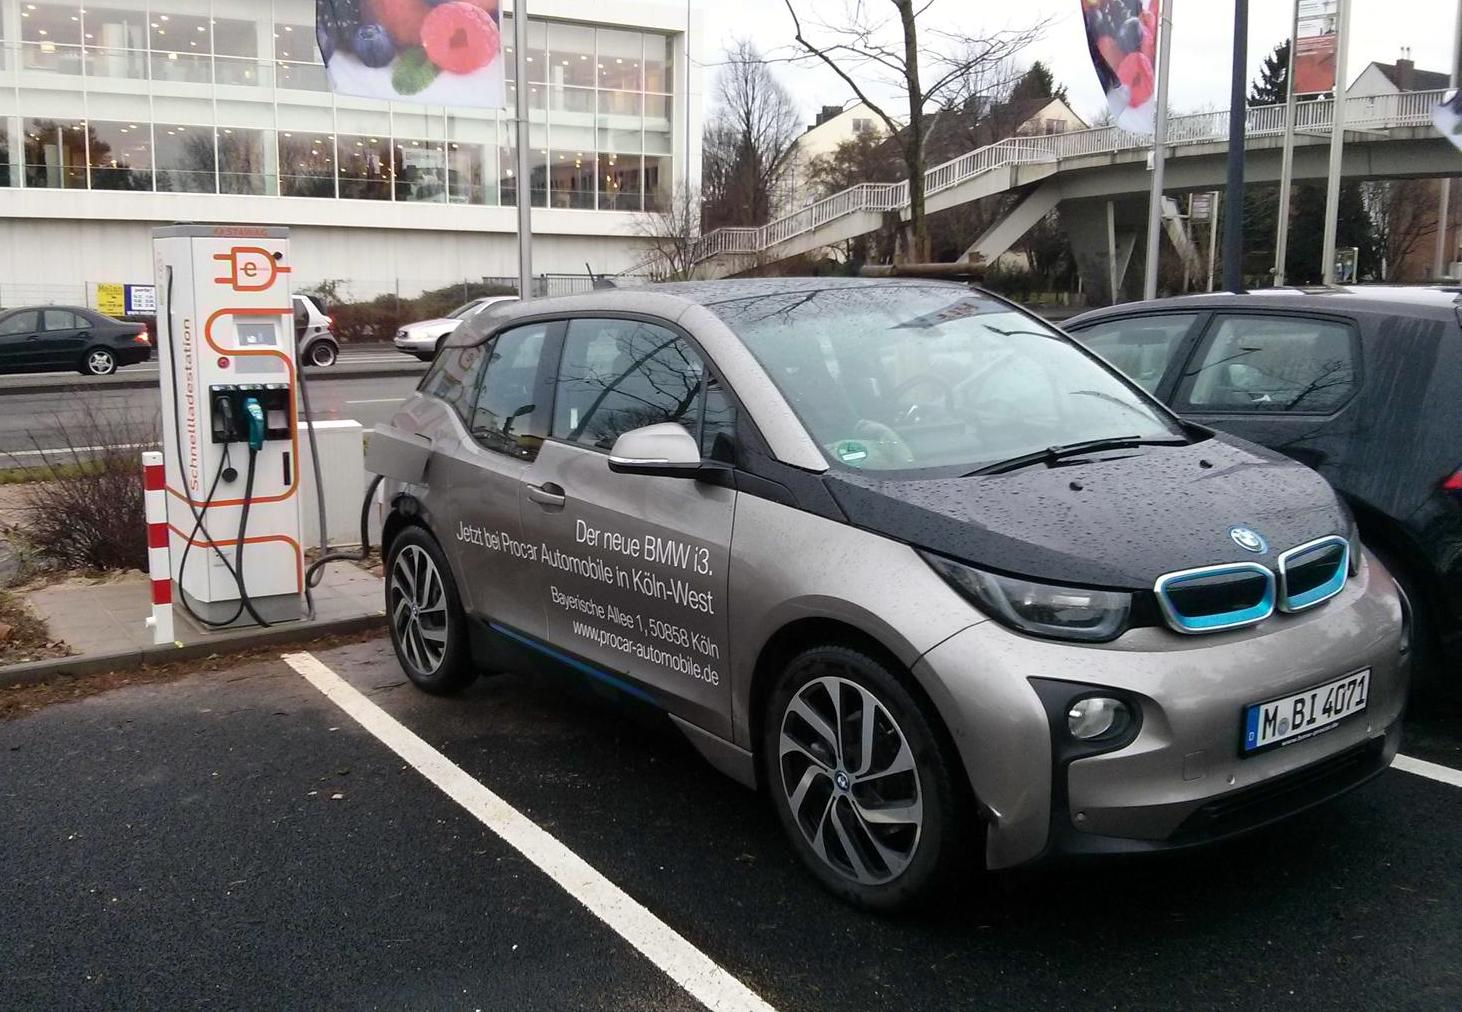 fazit zum testwochenende mit dem bmw i3 e stations blog. Black Bedroom Furniture Sets. Home Design Ideas